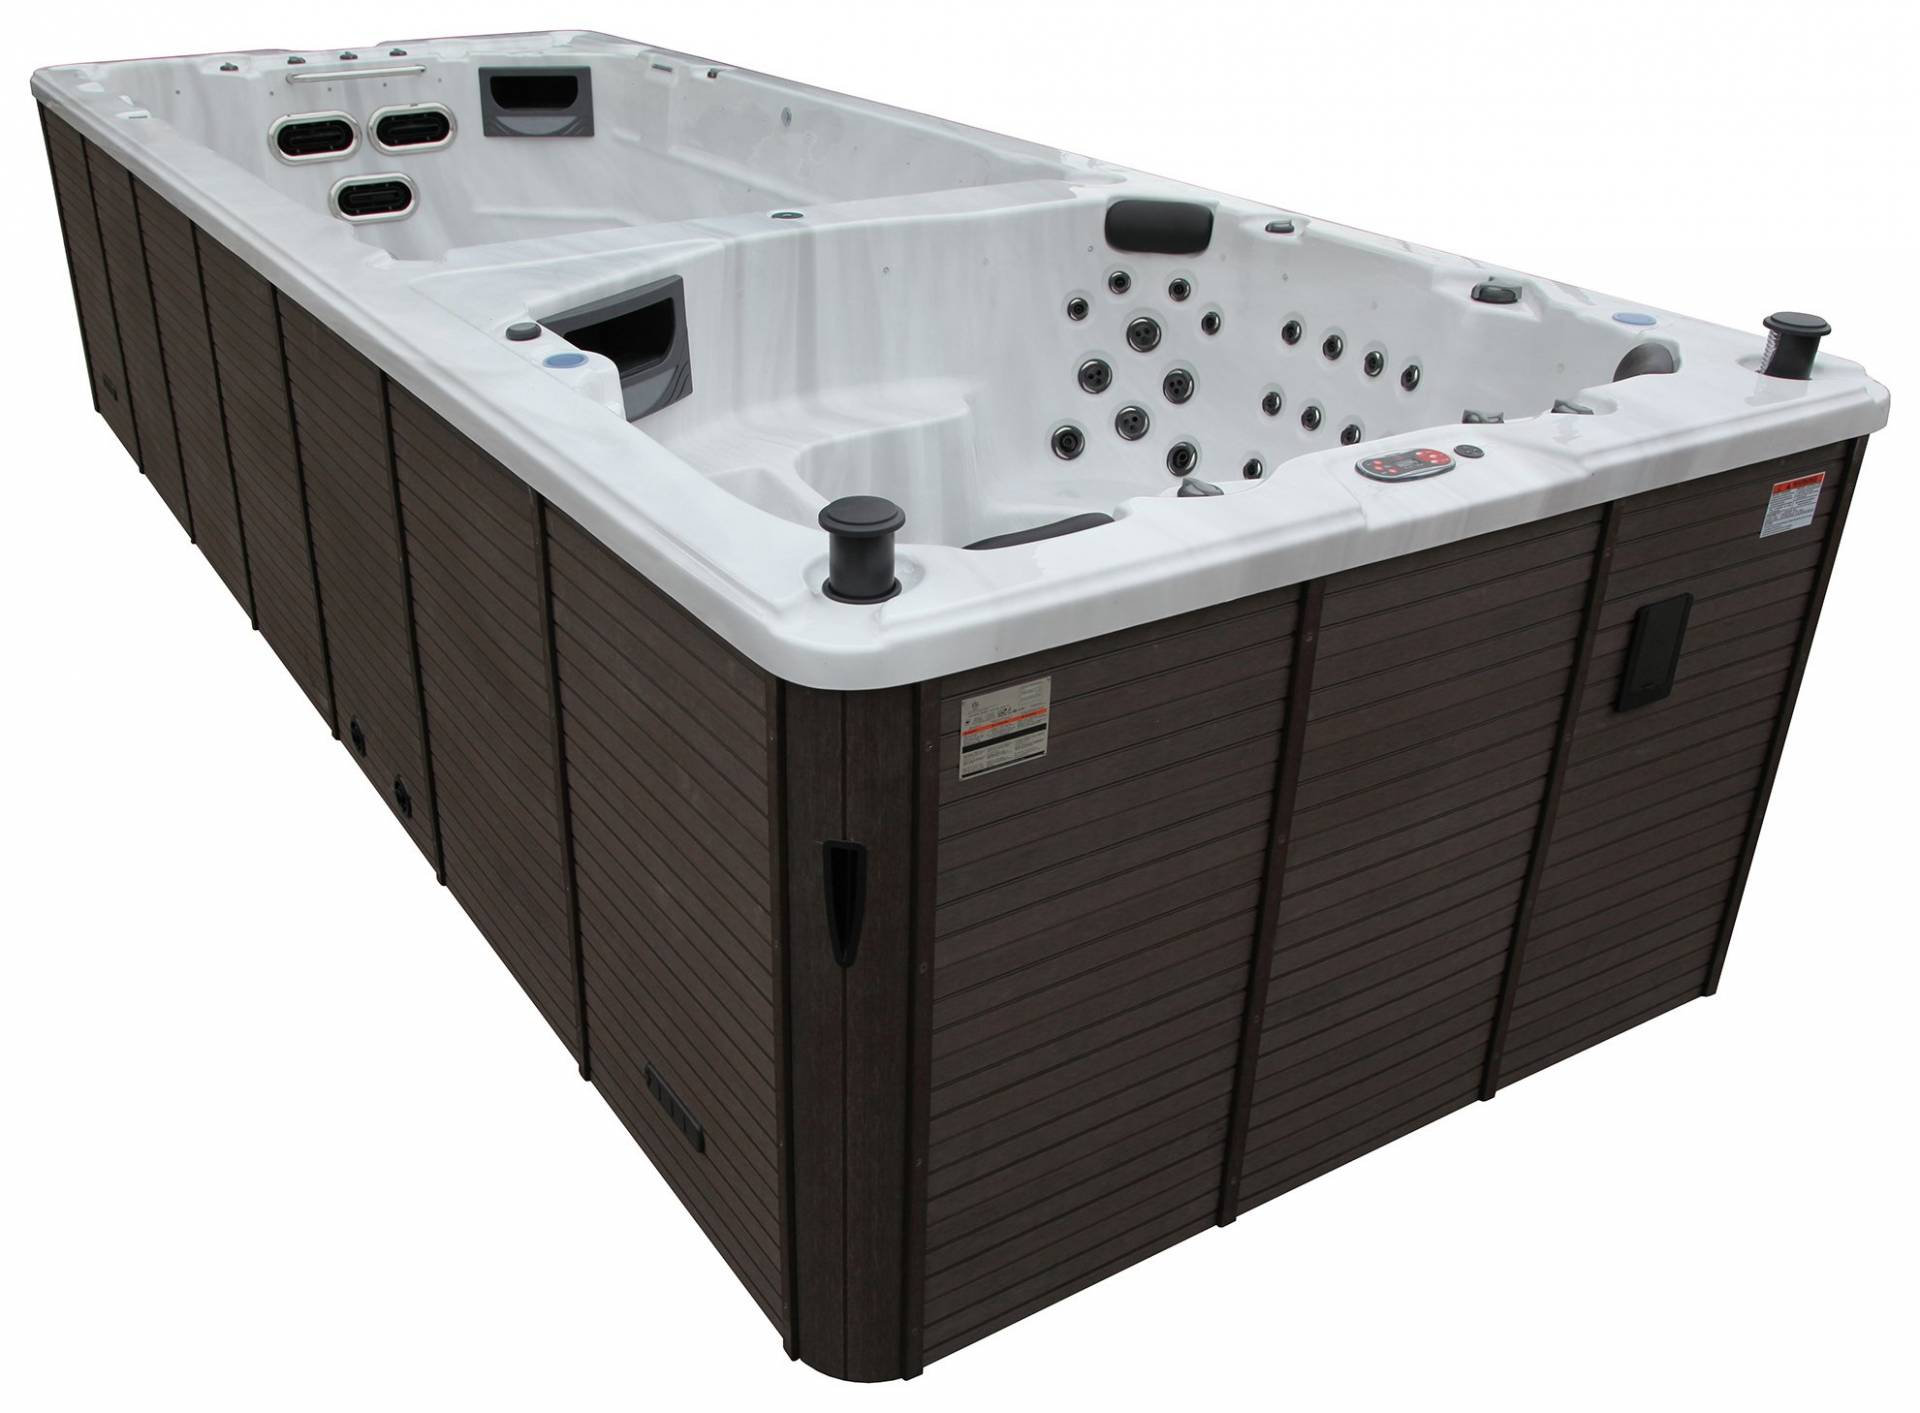 St Lawrence Swim Hot Tub - 20ft. from Canadian Spa Company